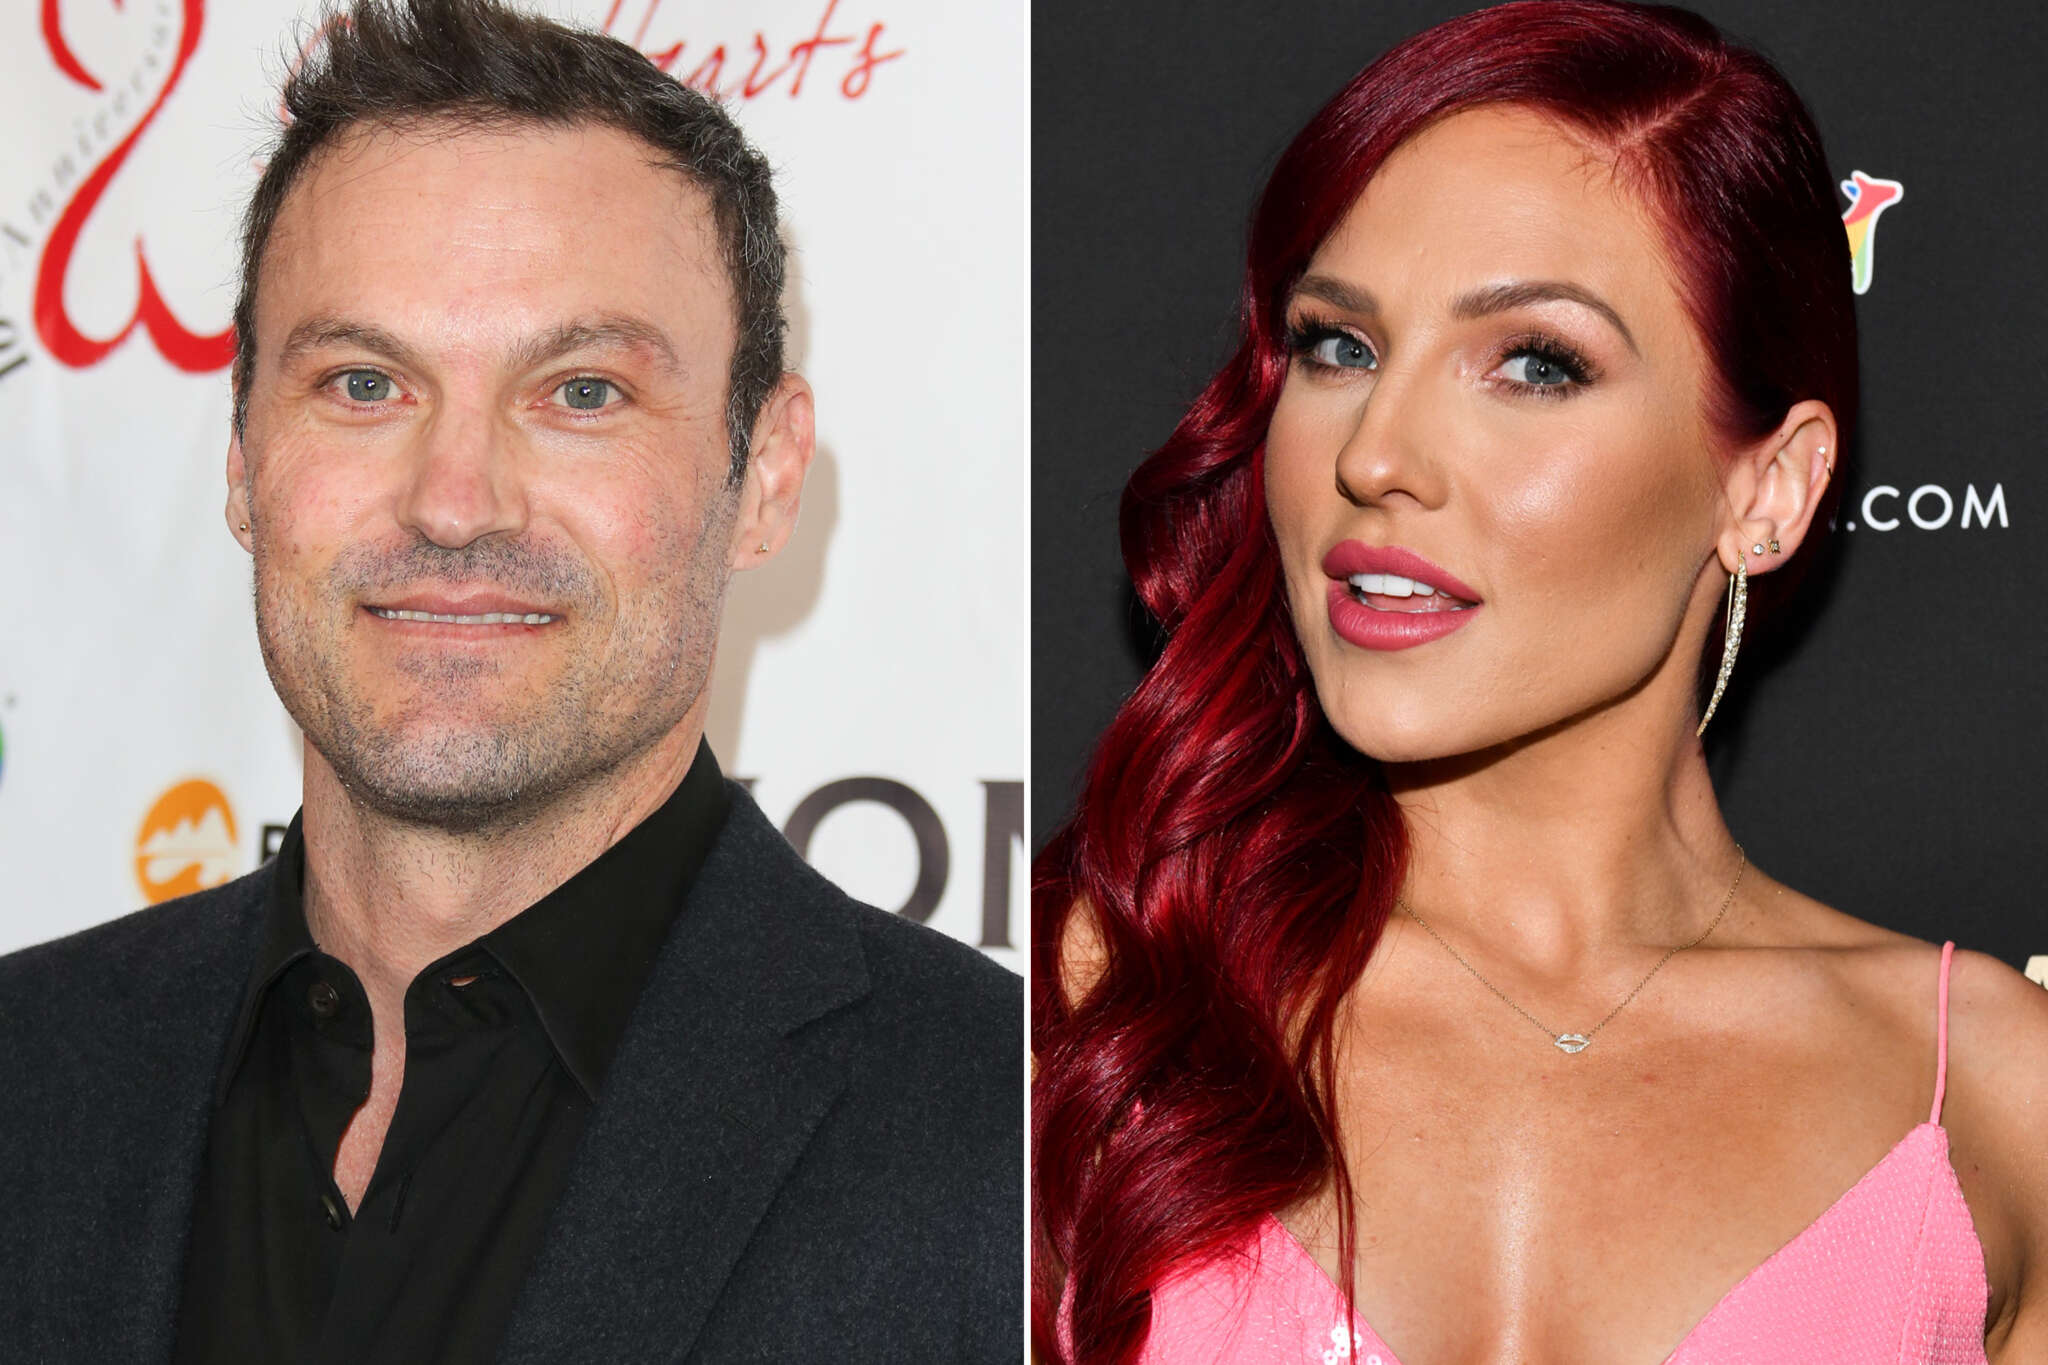 Sharna Burgess Says Fans Keep Asking About Brian Austin Green – Here's What She Told Them About Her 'Relationship Status!'